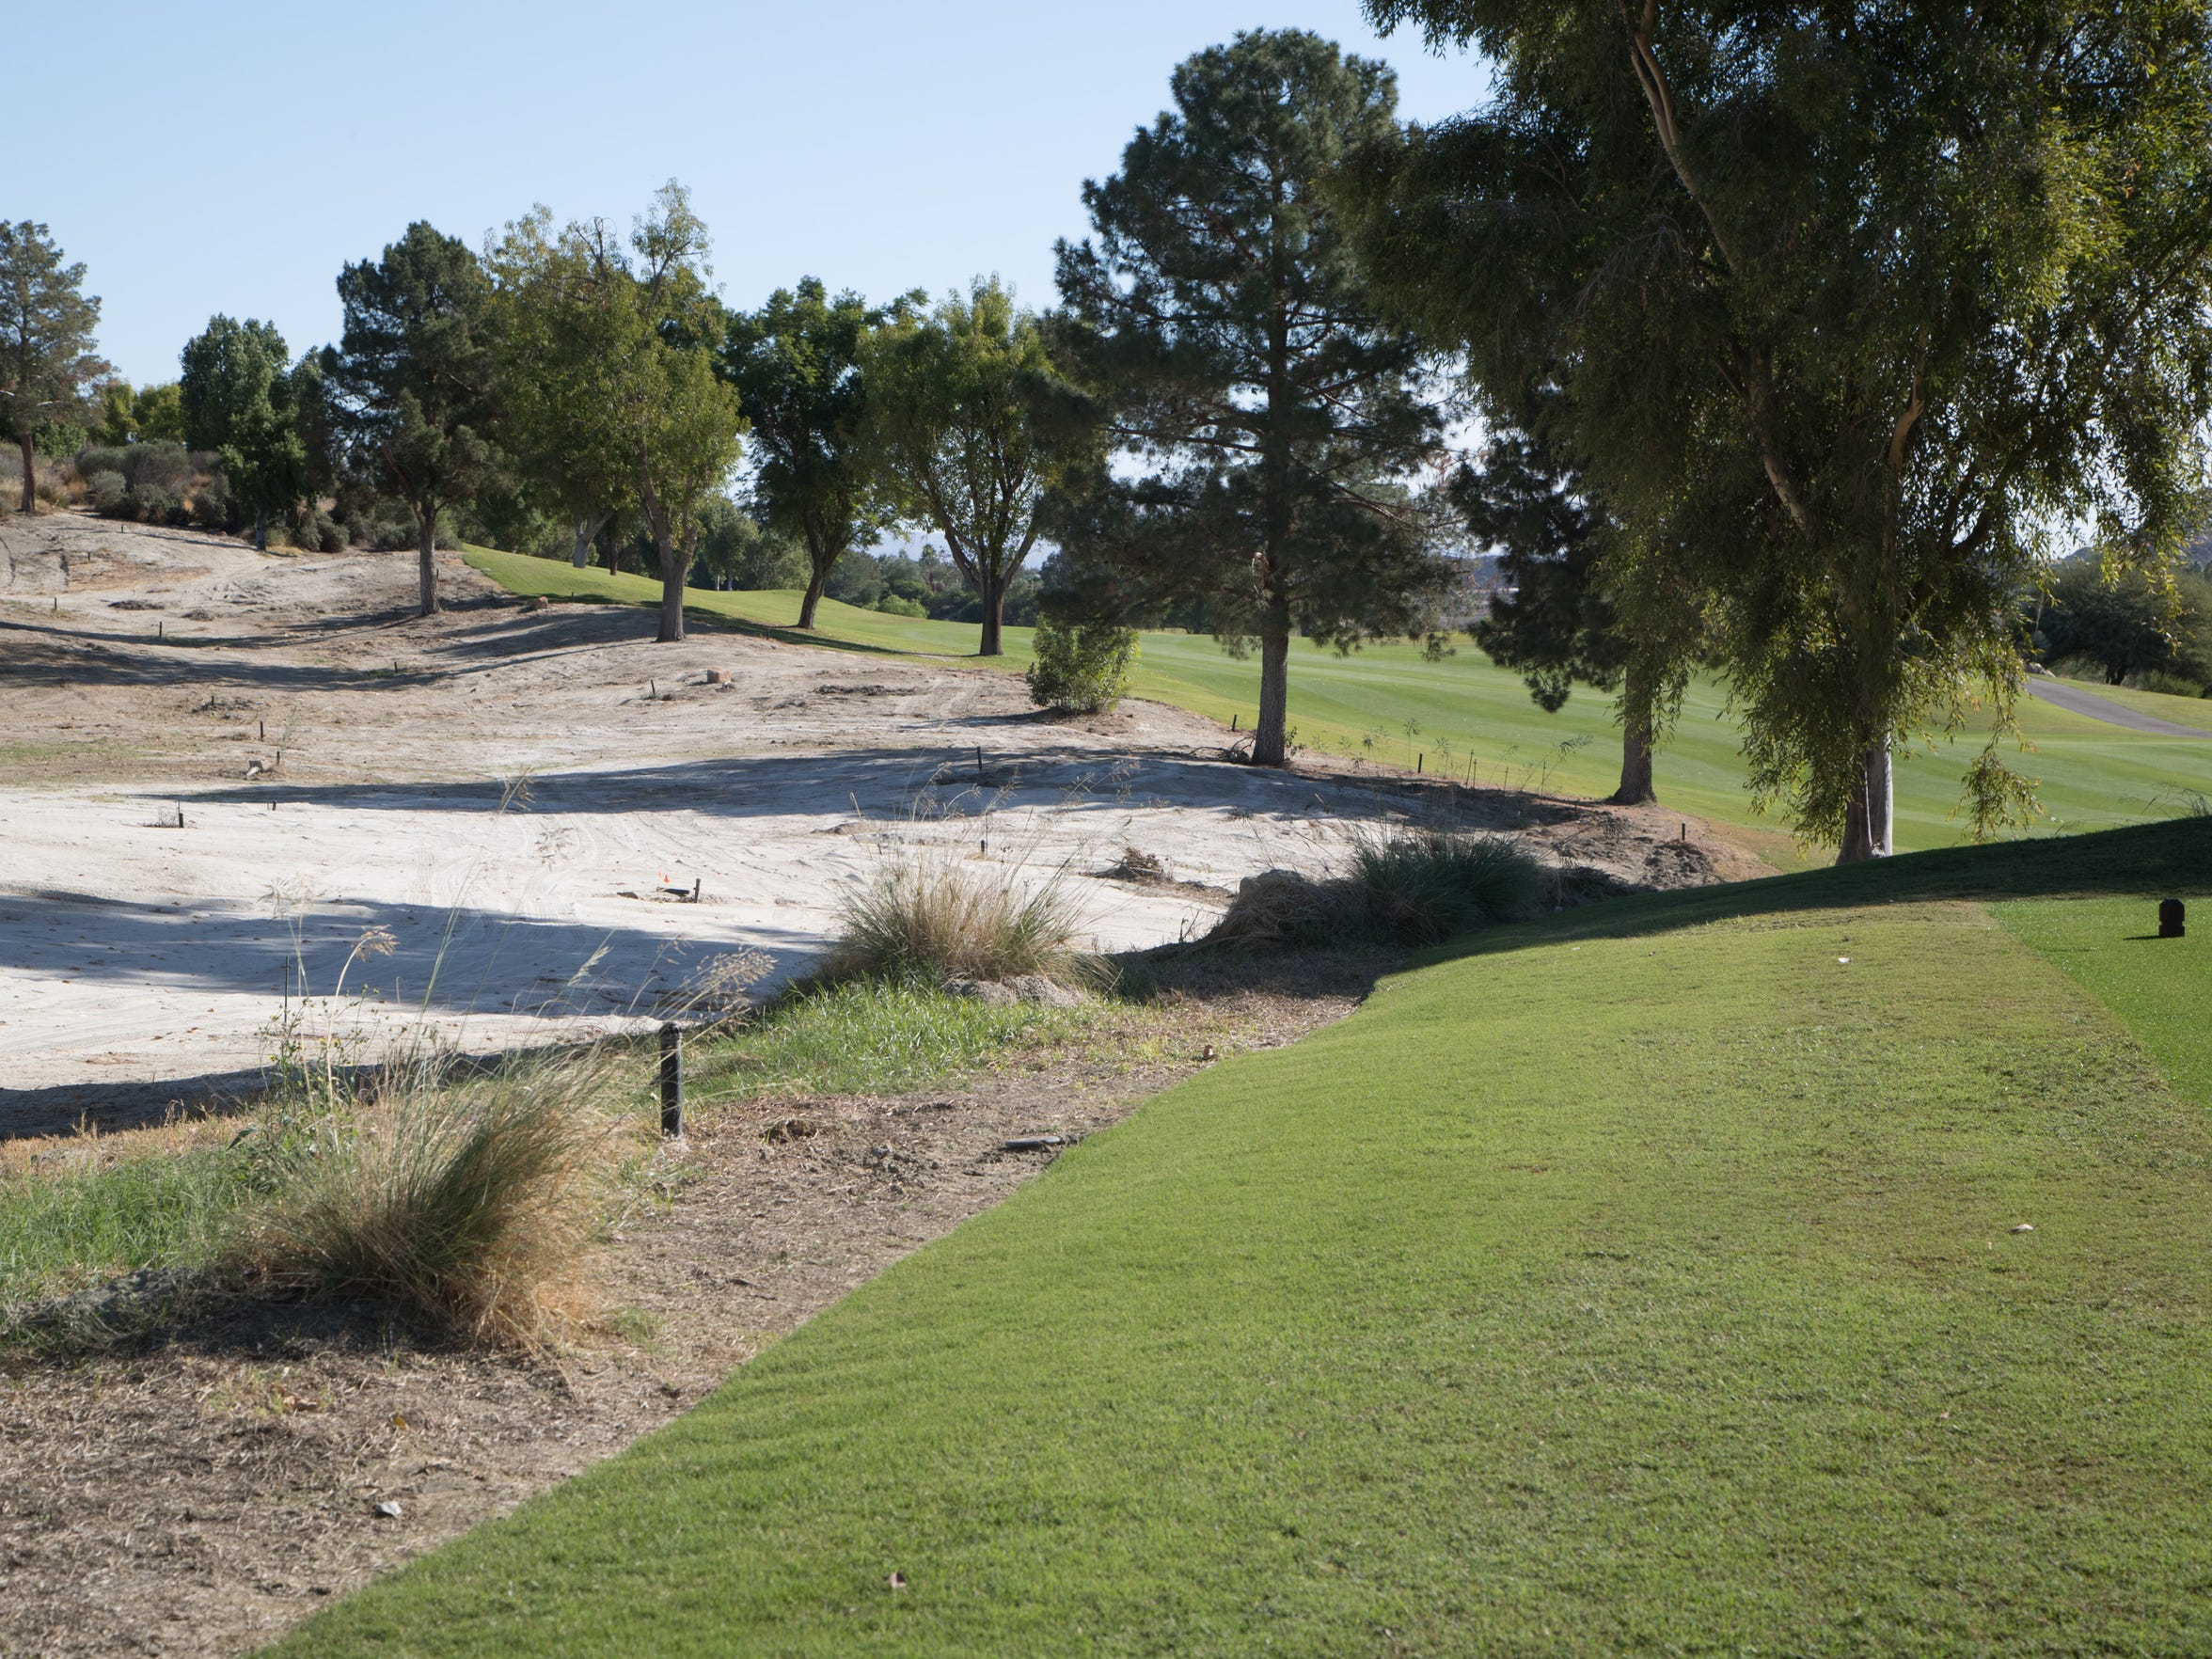 A large area of the Indian Wells Golf Resort, which was filled with wild grasses, will be replaced with mulch and drought resistant plants, December 5, 2017.